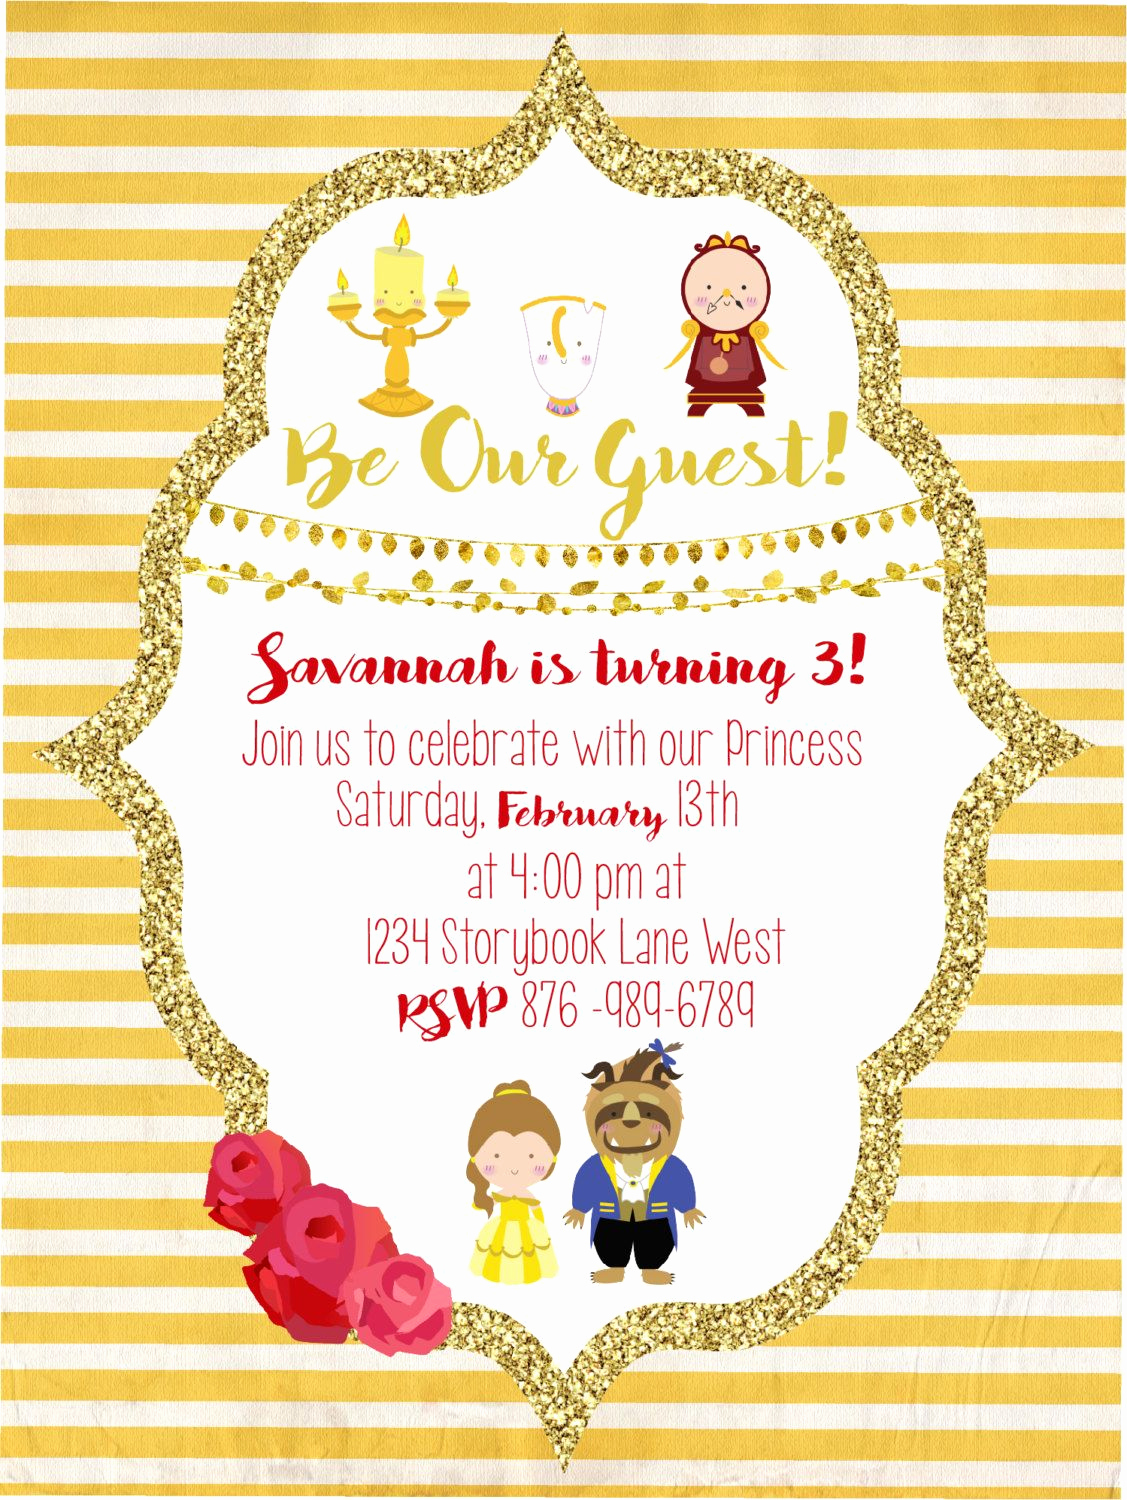 Beauty and the Beast Invitation Awesome Beauty and the Beast Party Invitation